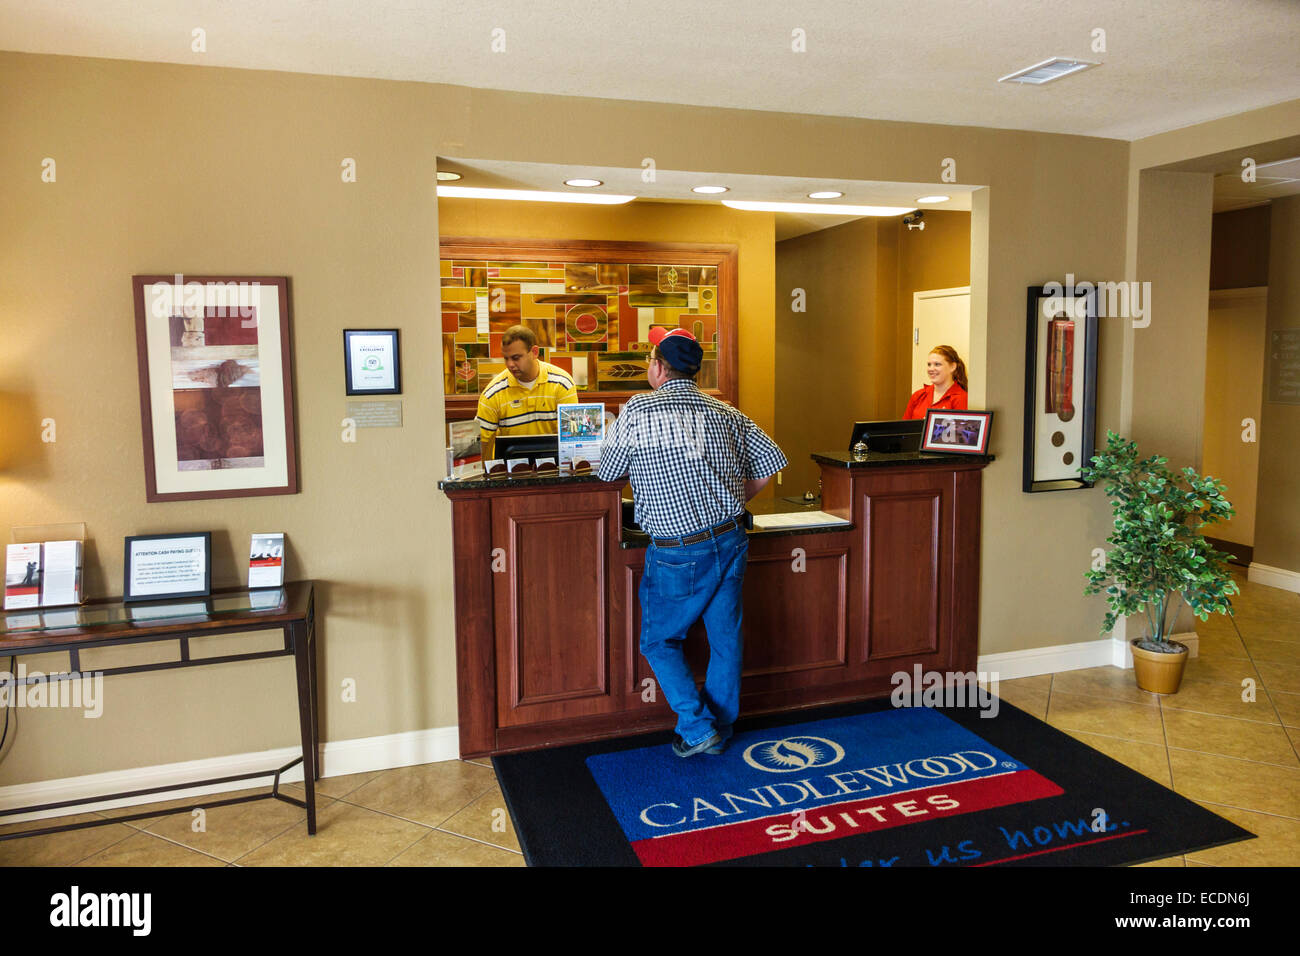 Springfield illinois candlewood suites motel hotel lobby Small hotel lobby